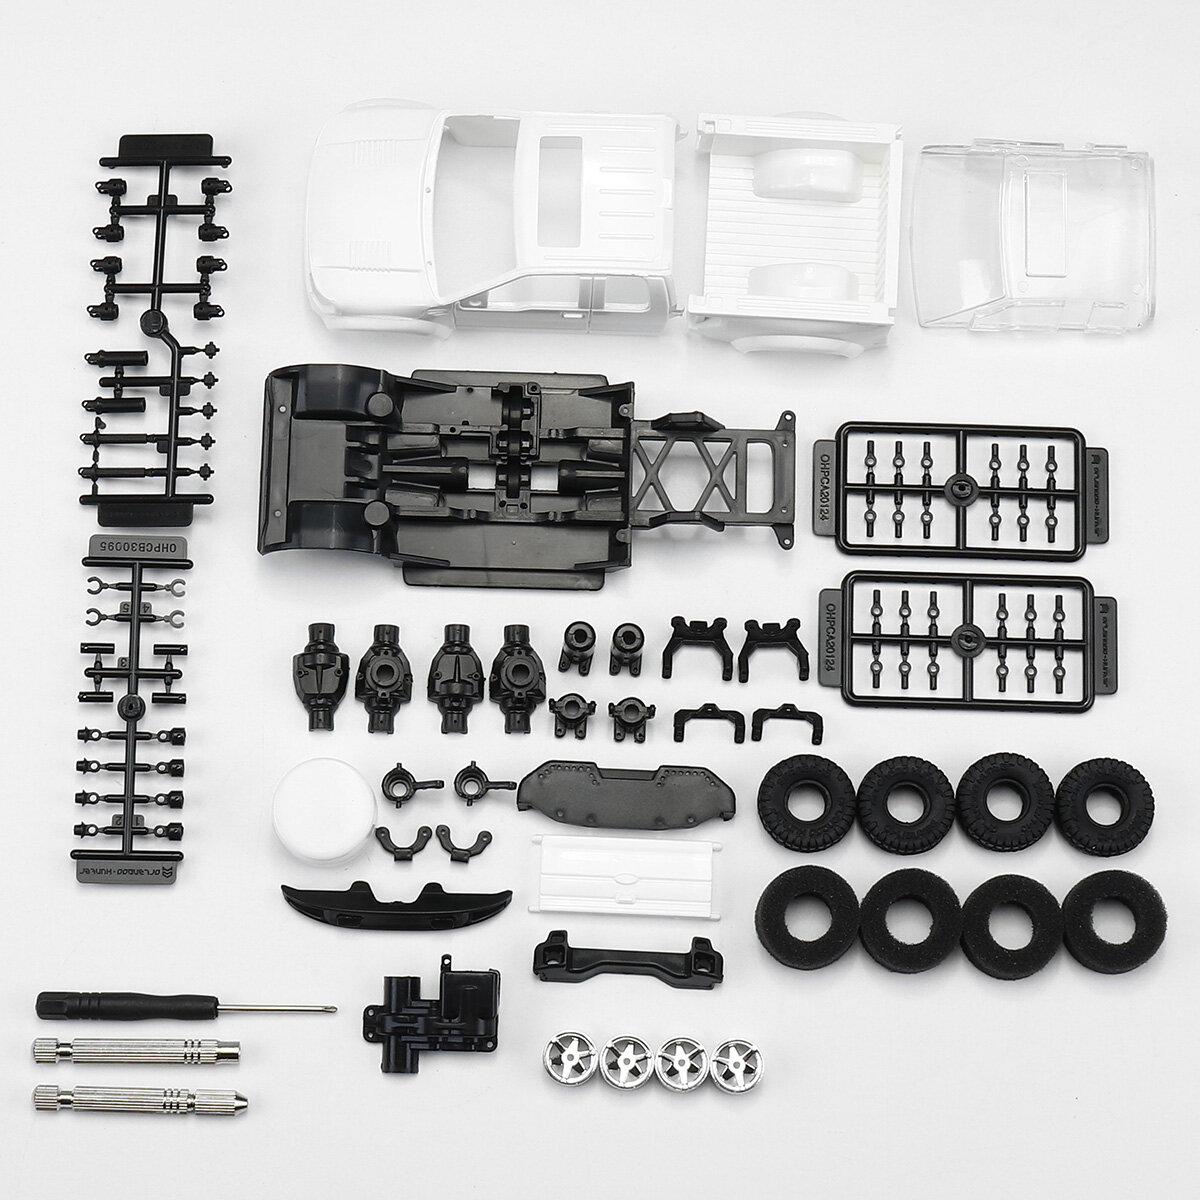 Orlandoo Hunter OH32X01 1/32 4WD DIY Frame RC Kit Rock Crawler Car Off-Road Vehicles without Electronic Parts - 7